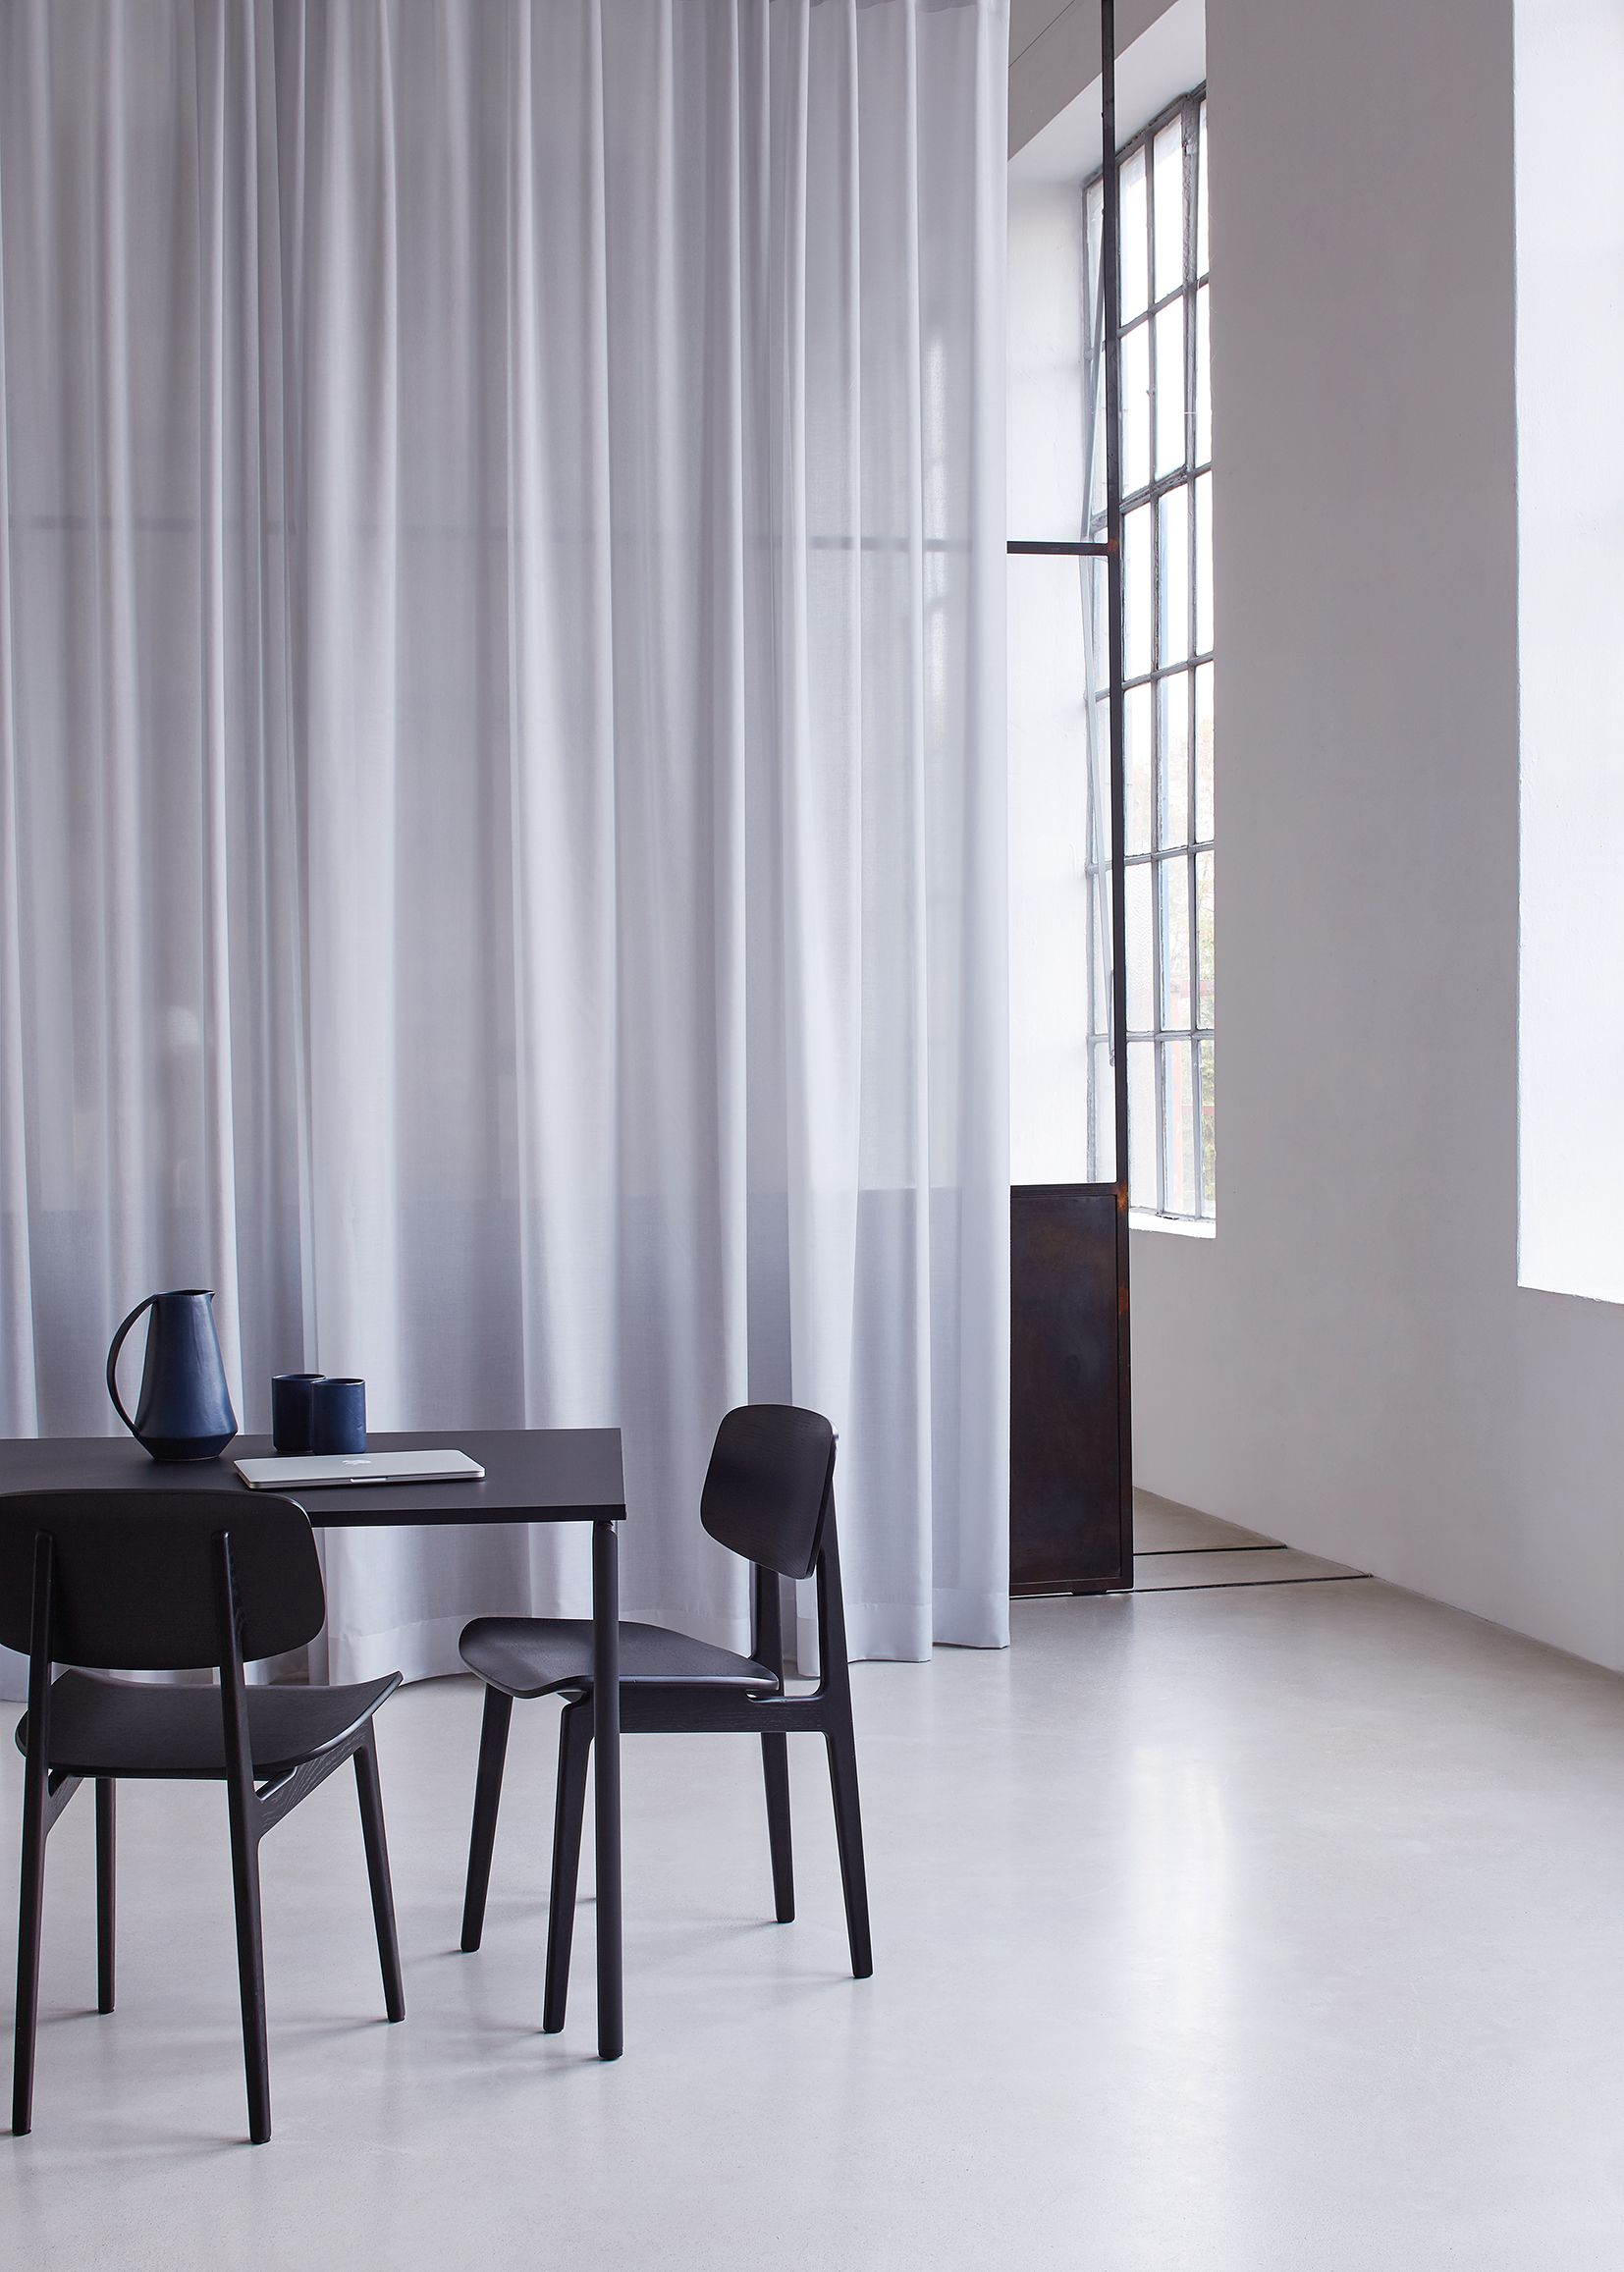 Transparent Curtain Fabric With Acoustic Properties Sinfoniacoustic Is Based On The Bestseller Sinfonia It Absorbs Sound Mit Bildern Raumteiler Vorhang Raumteiler Wohnen